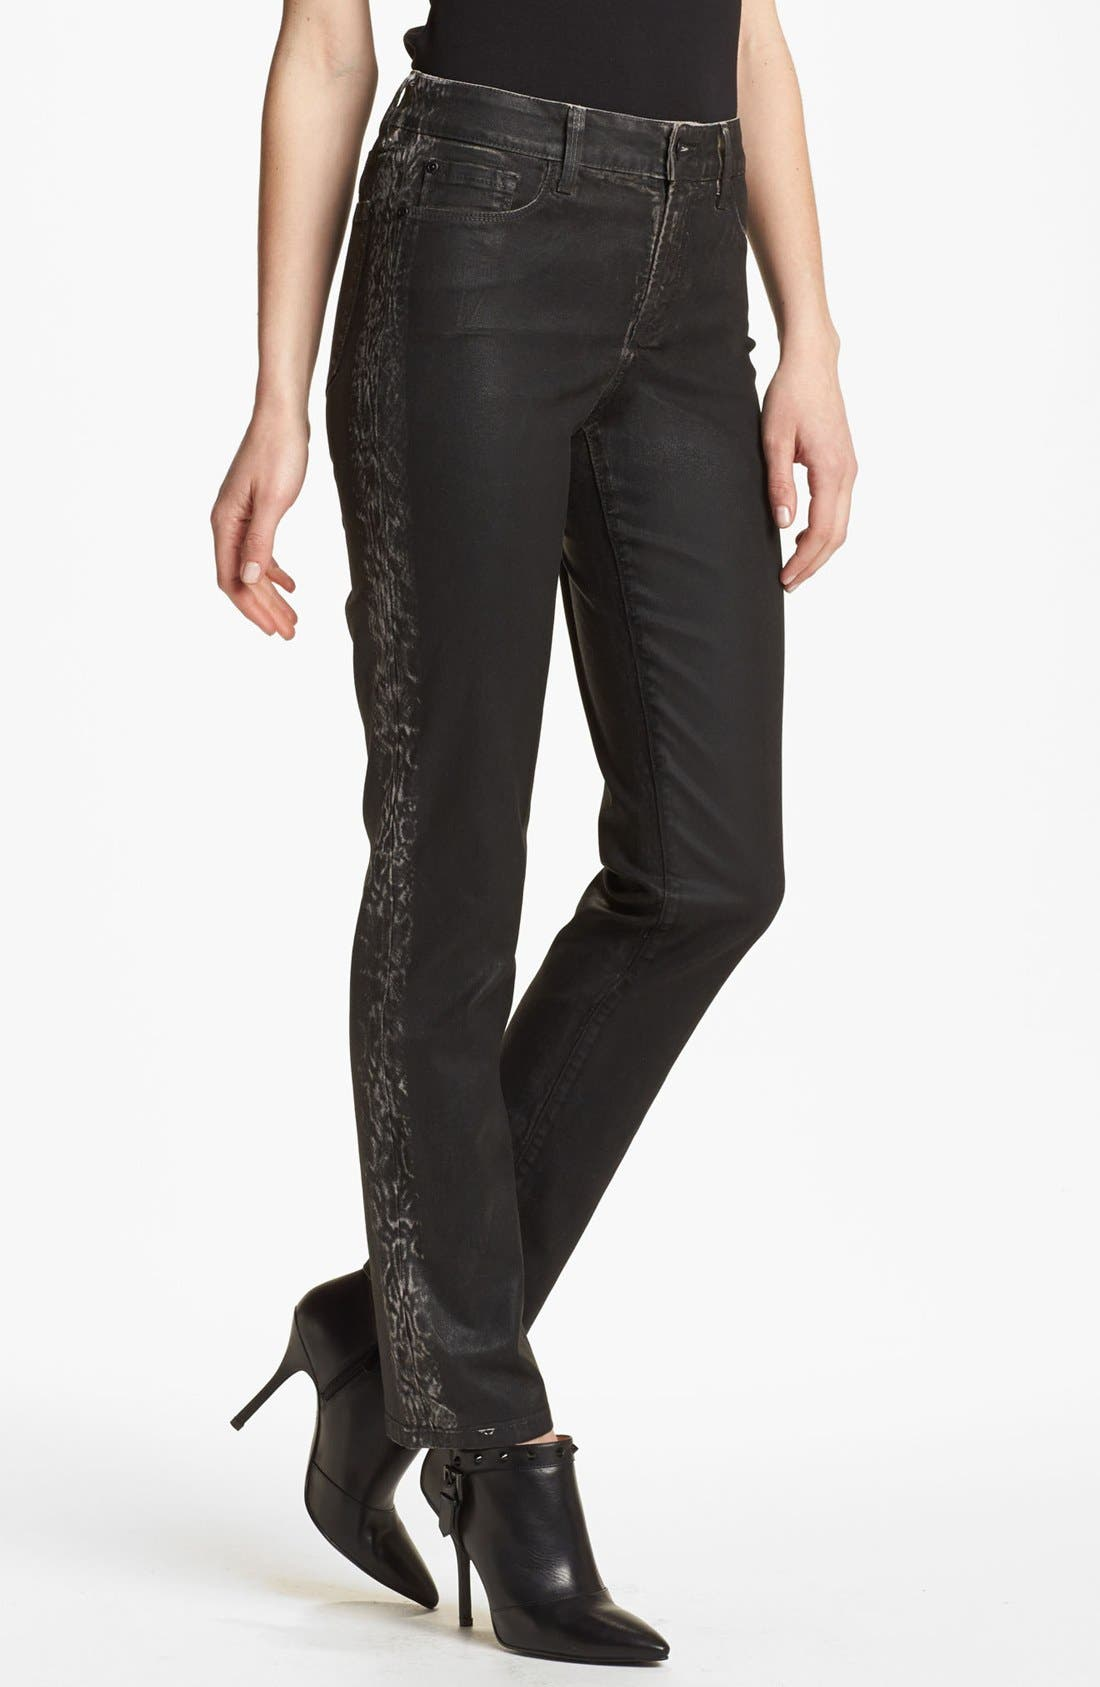 Alternate Image 1 Selected - NYDJ 'Sheri' Tuxedo Stripe Coated Skinny Jeans (Regular & Petite)